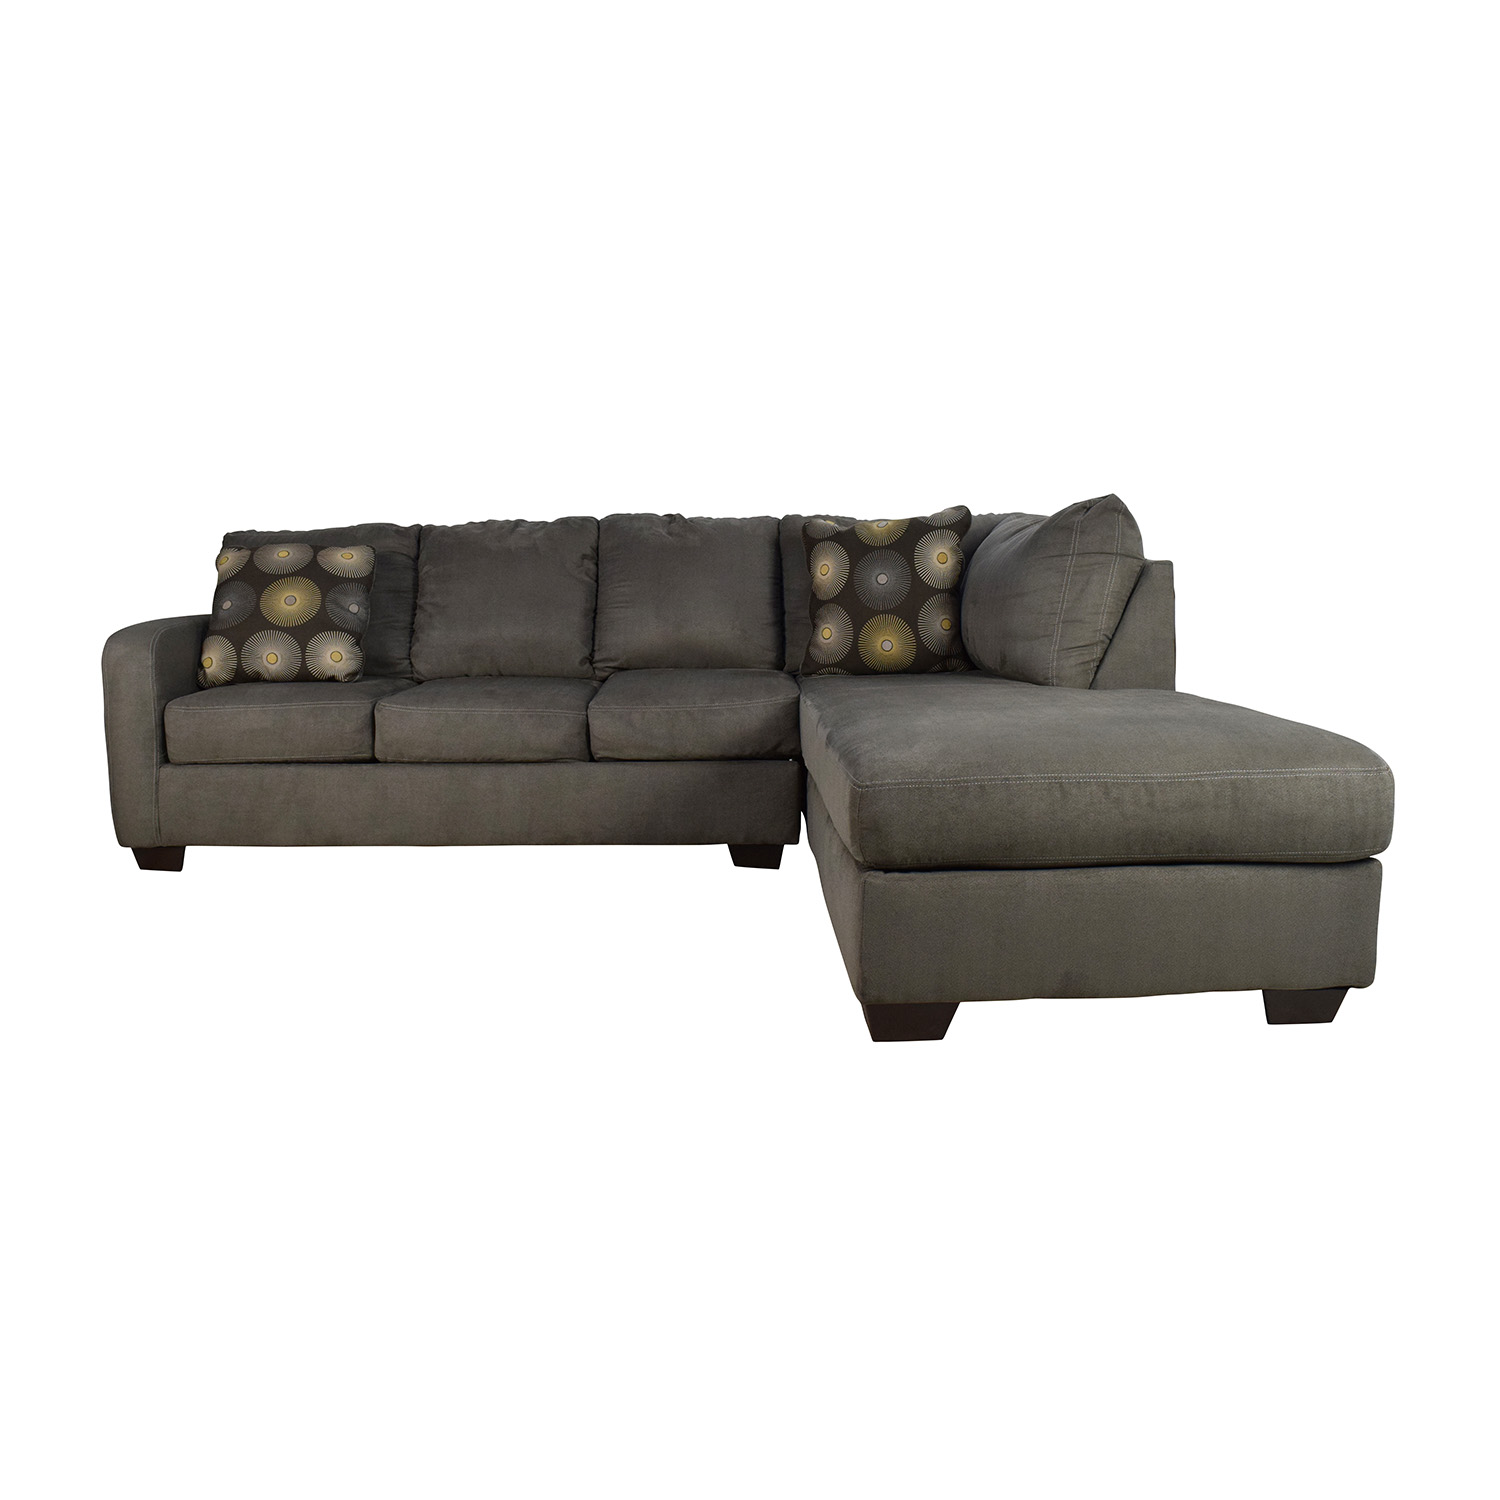 Ashley Furniture Waverly Gray Sectional Sofa Price